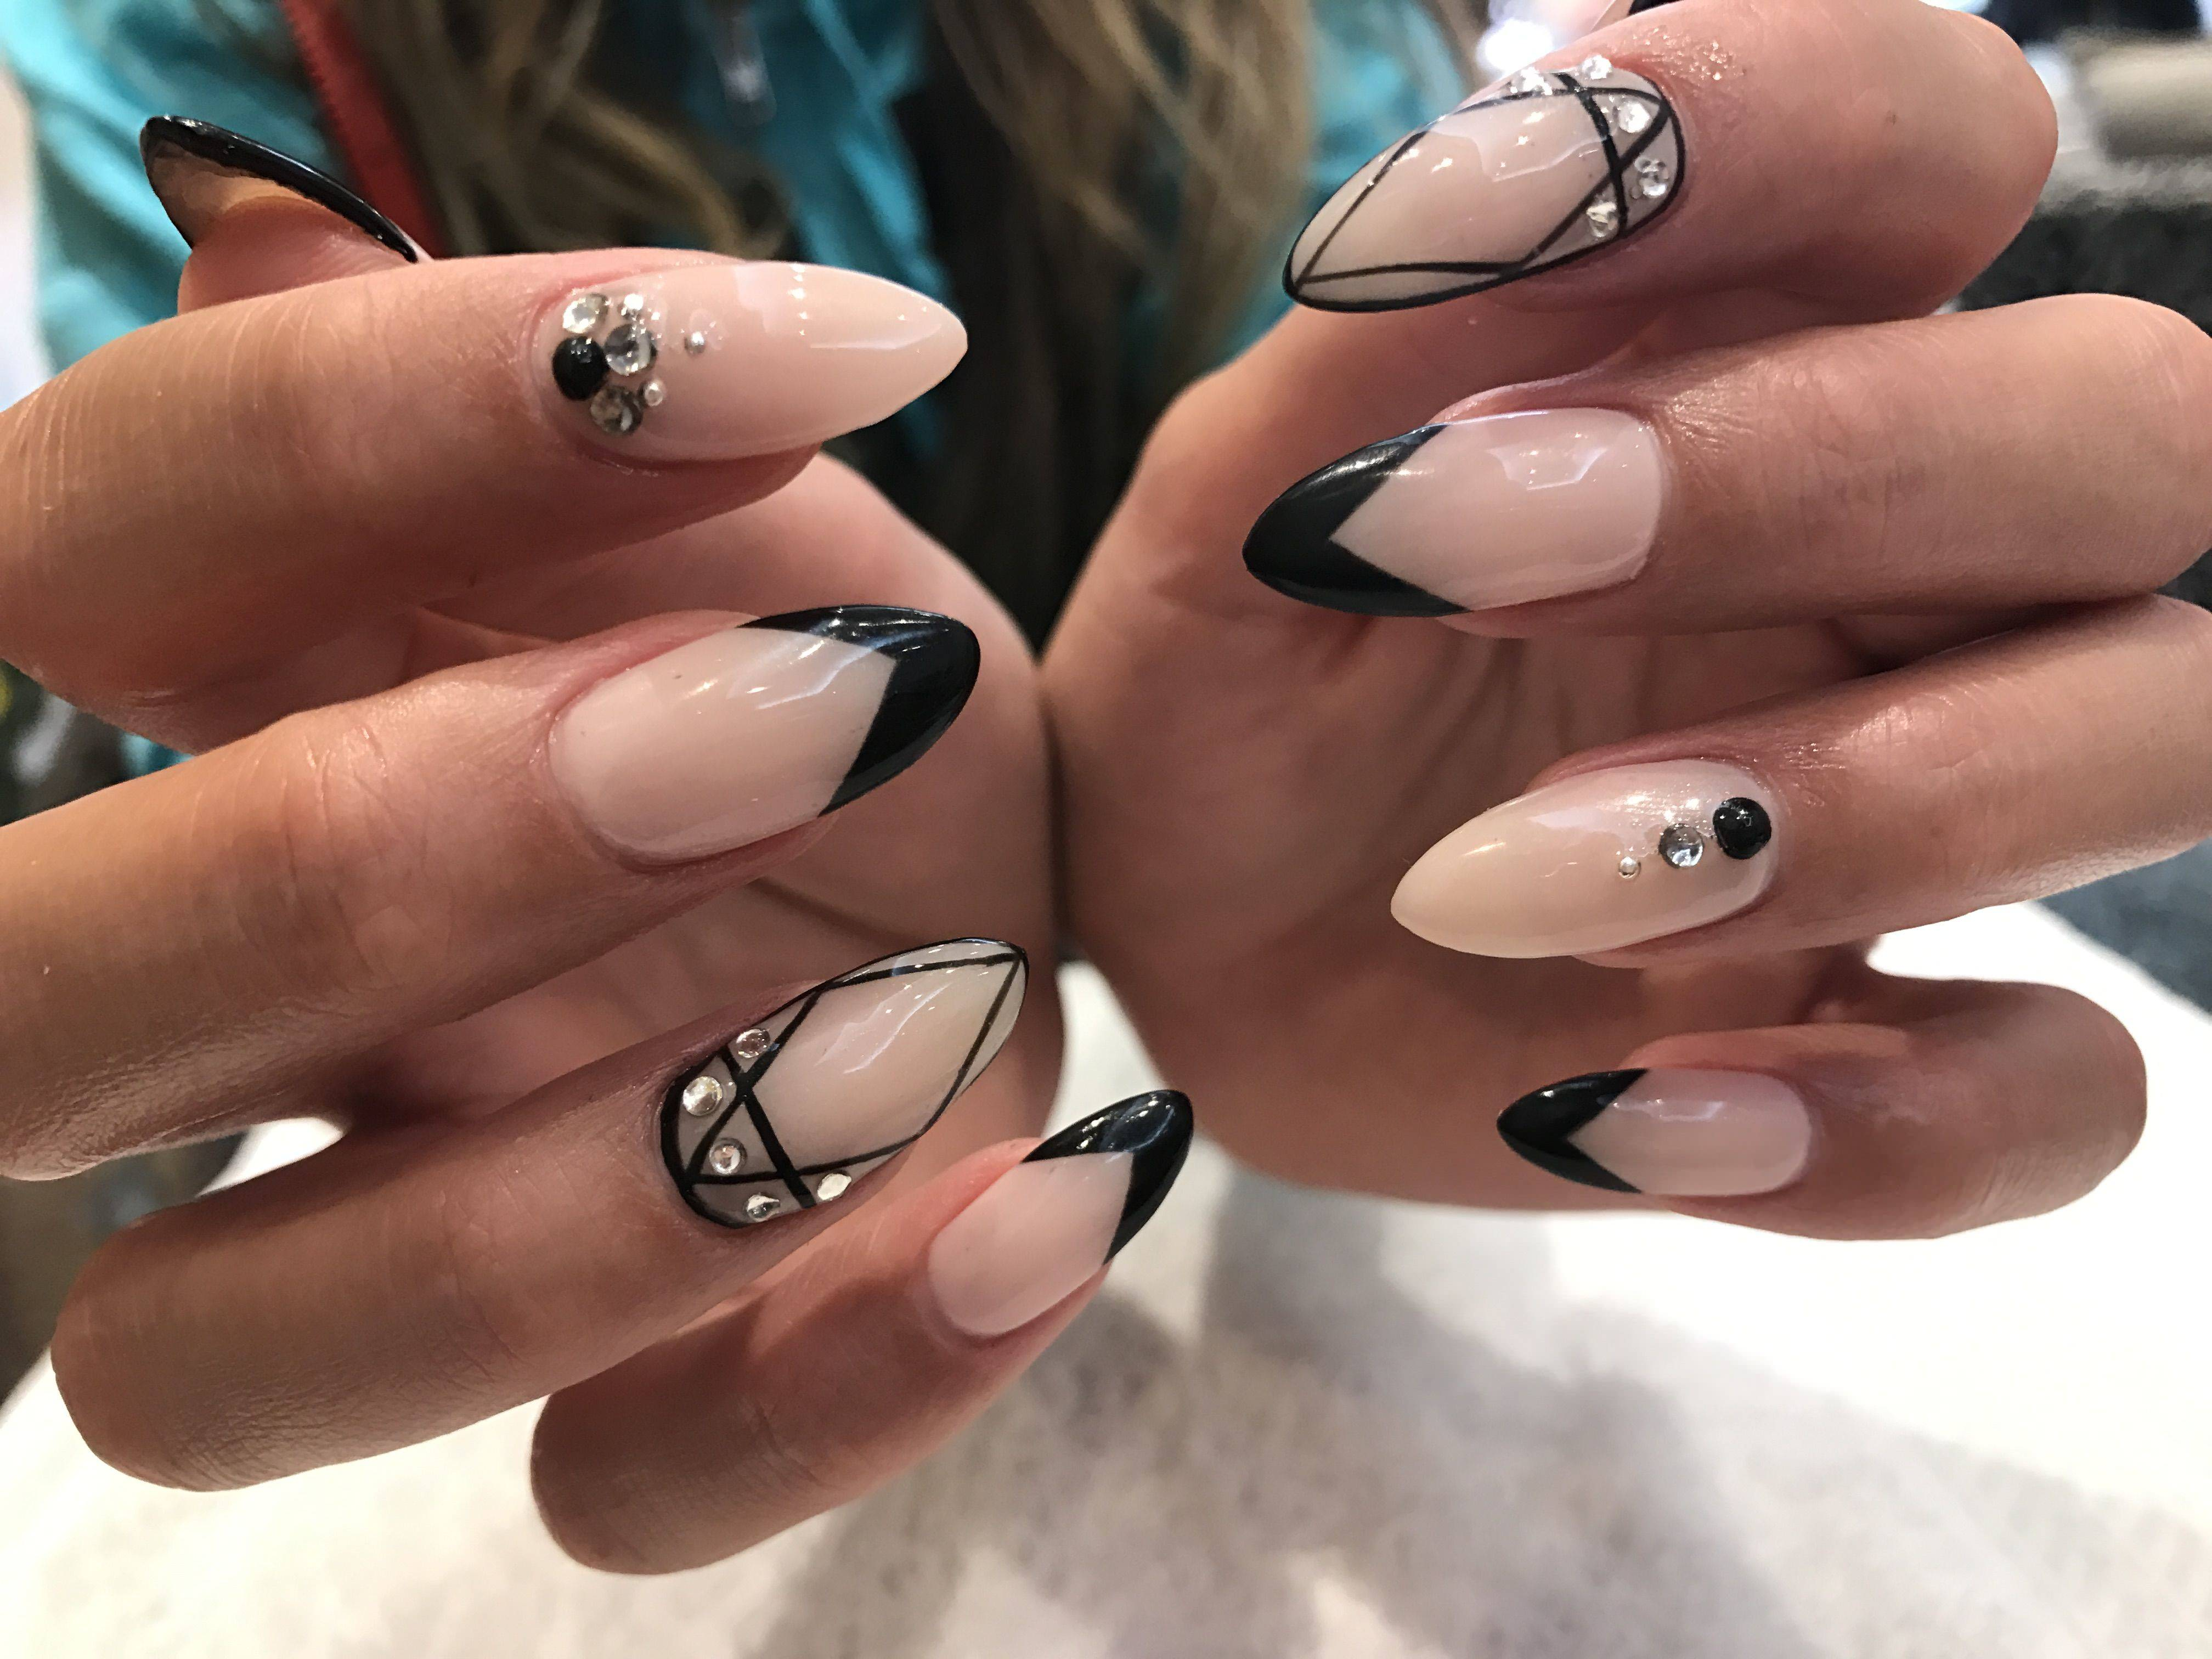 These gel nails look especially sexy due to the most daring nail shape –  stiletto